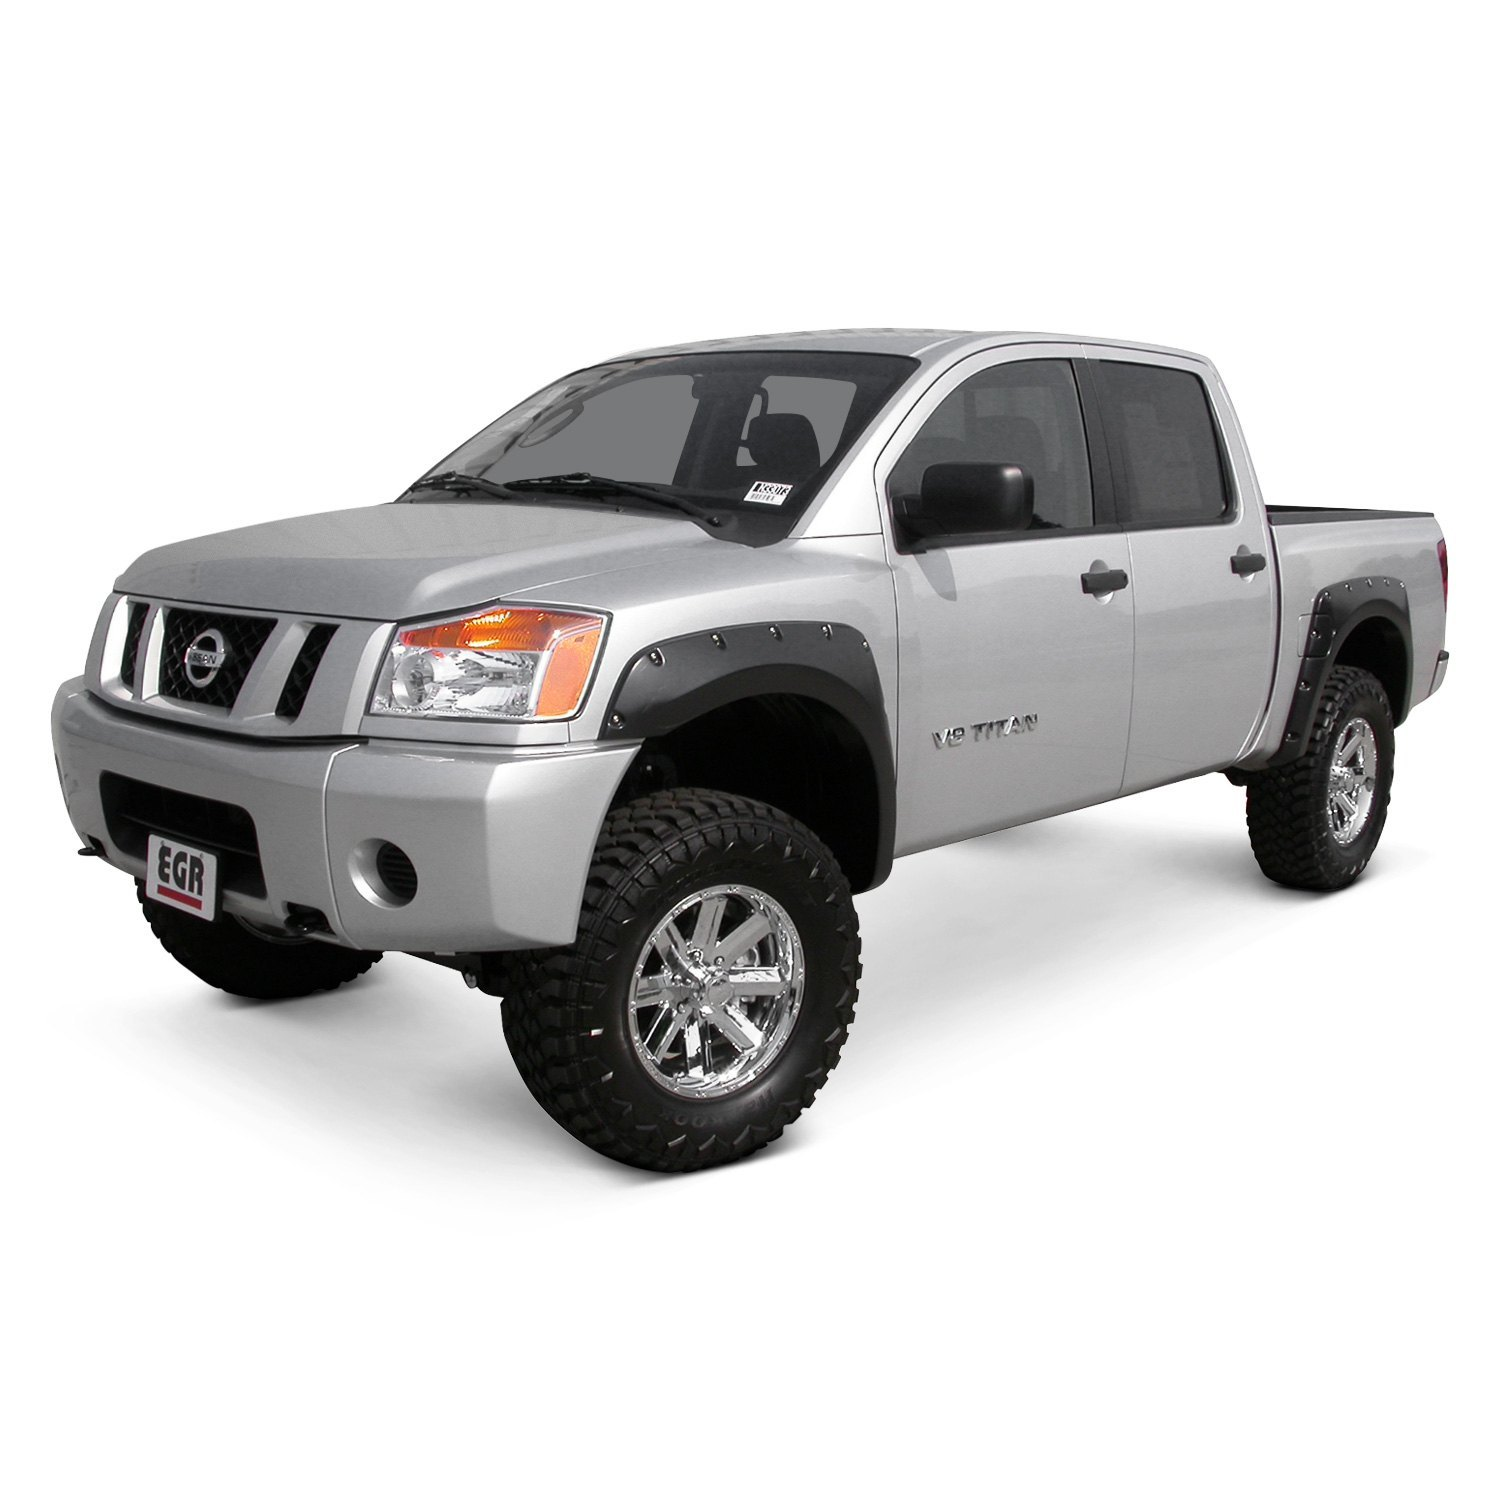 egr nissan titan without tool box 2009 bolt on style. Black Bedroom Furniture Sets. Home Design Ideas